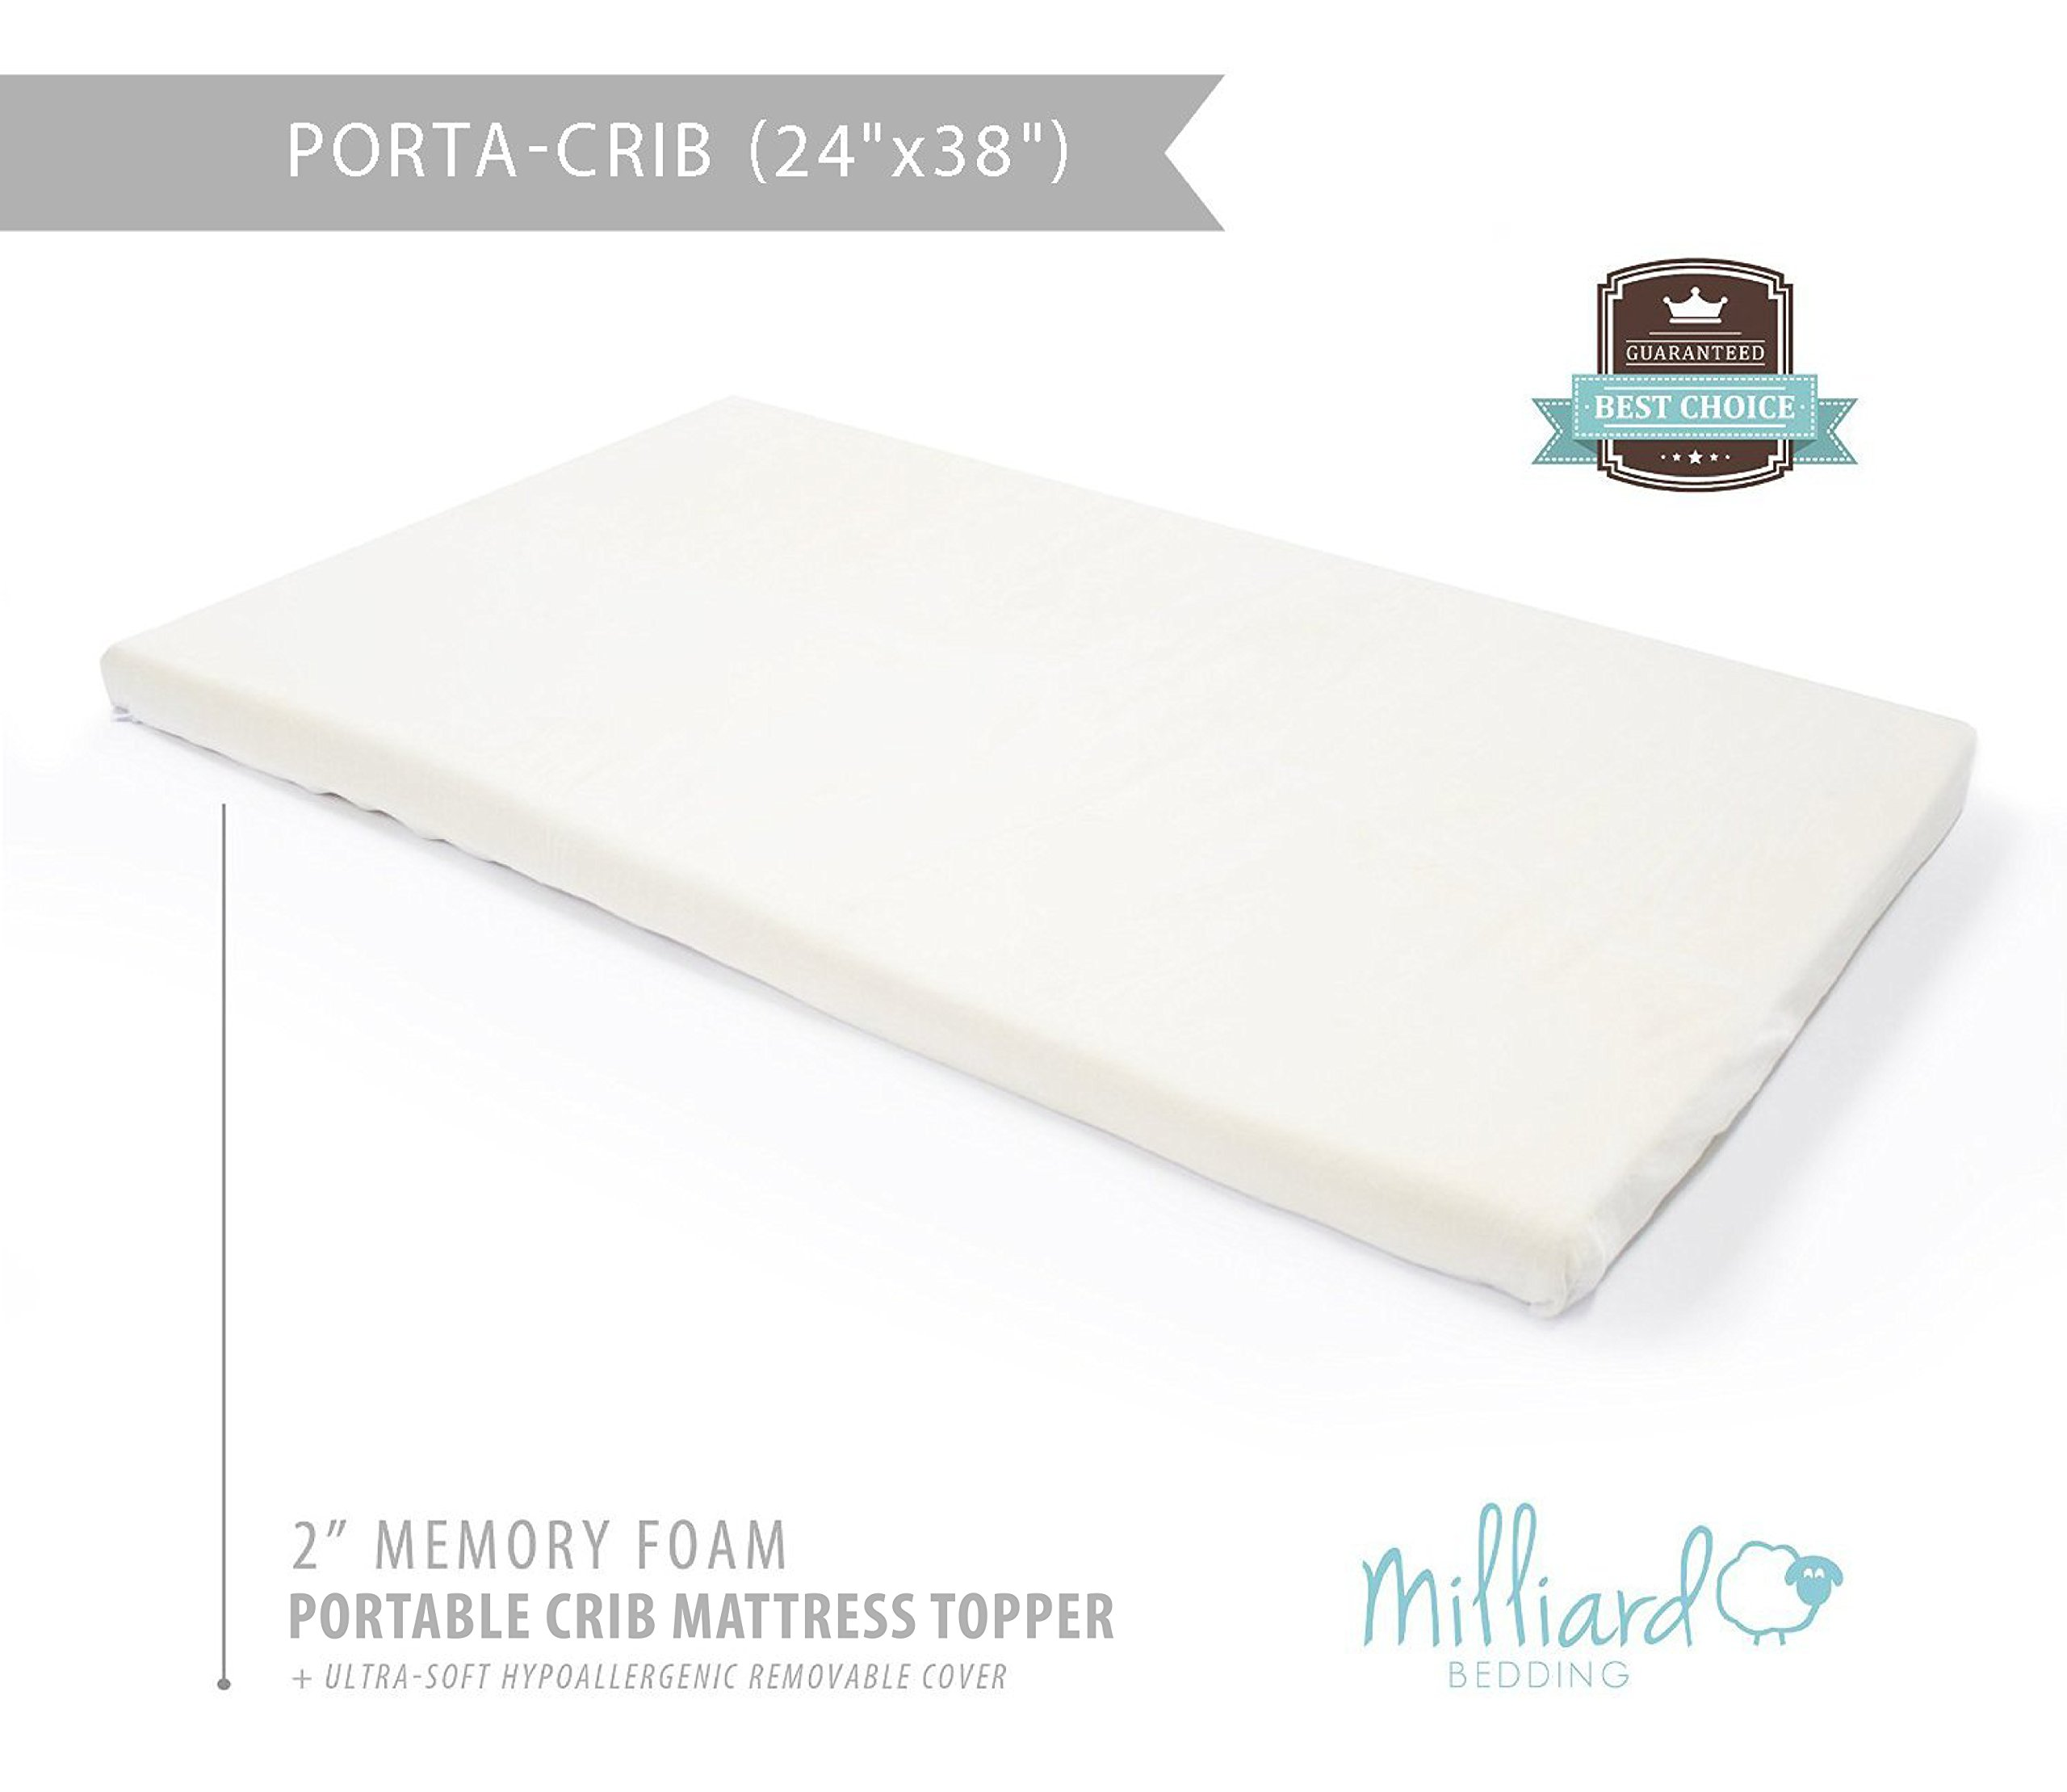 Milliard Mini-Crib Memory Foam Mattress Topper - SIZED FOR THE MINI CRIB – Does Not Fit Playard or Standard Crib